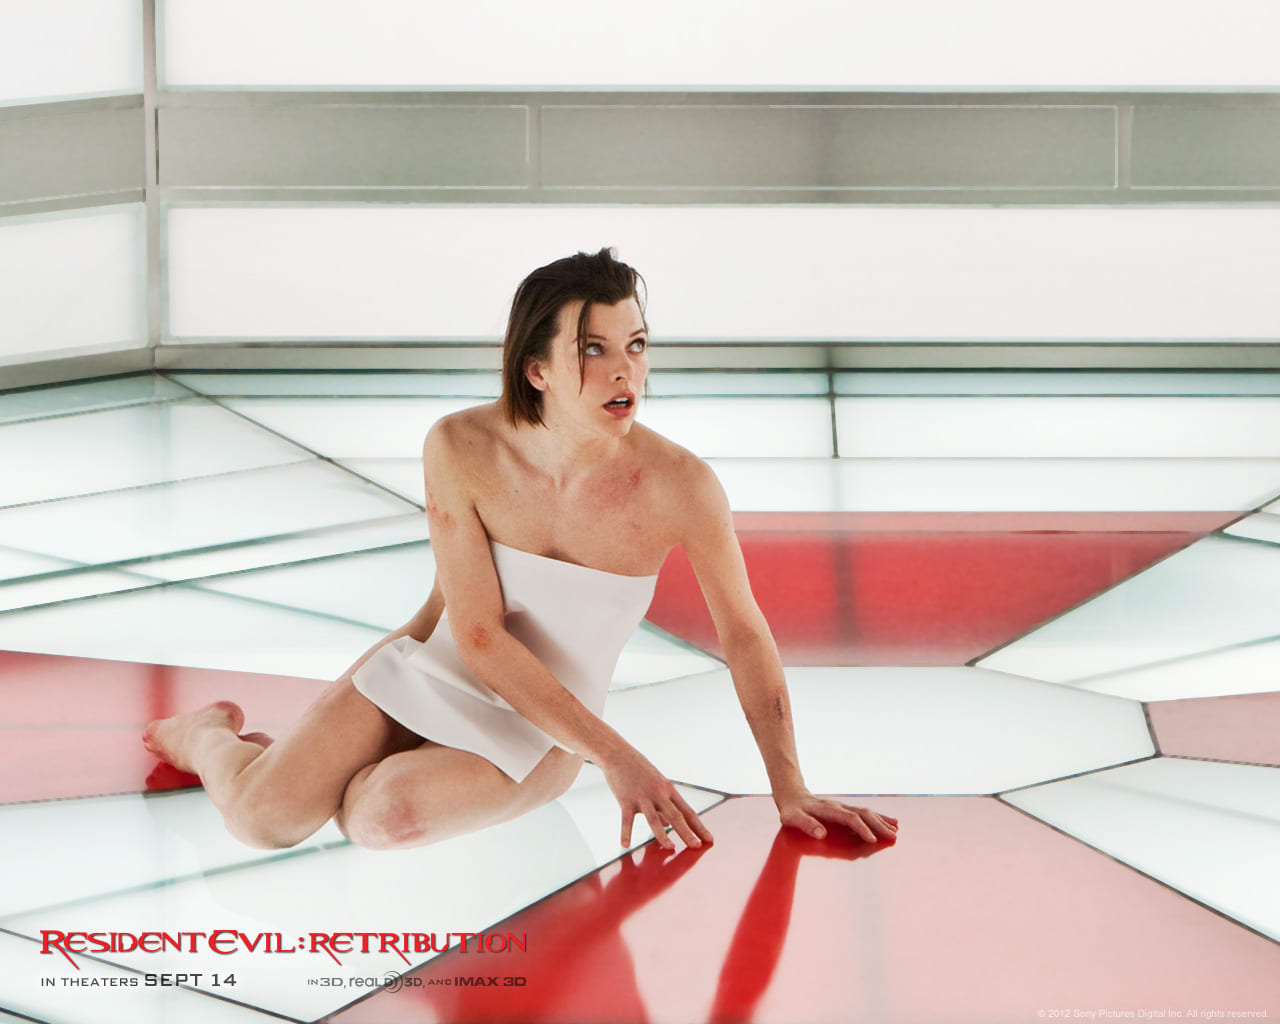 Resident Evil: Retribution Wallpapers